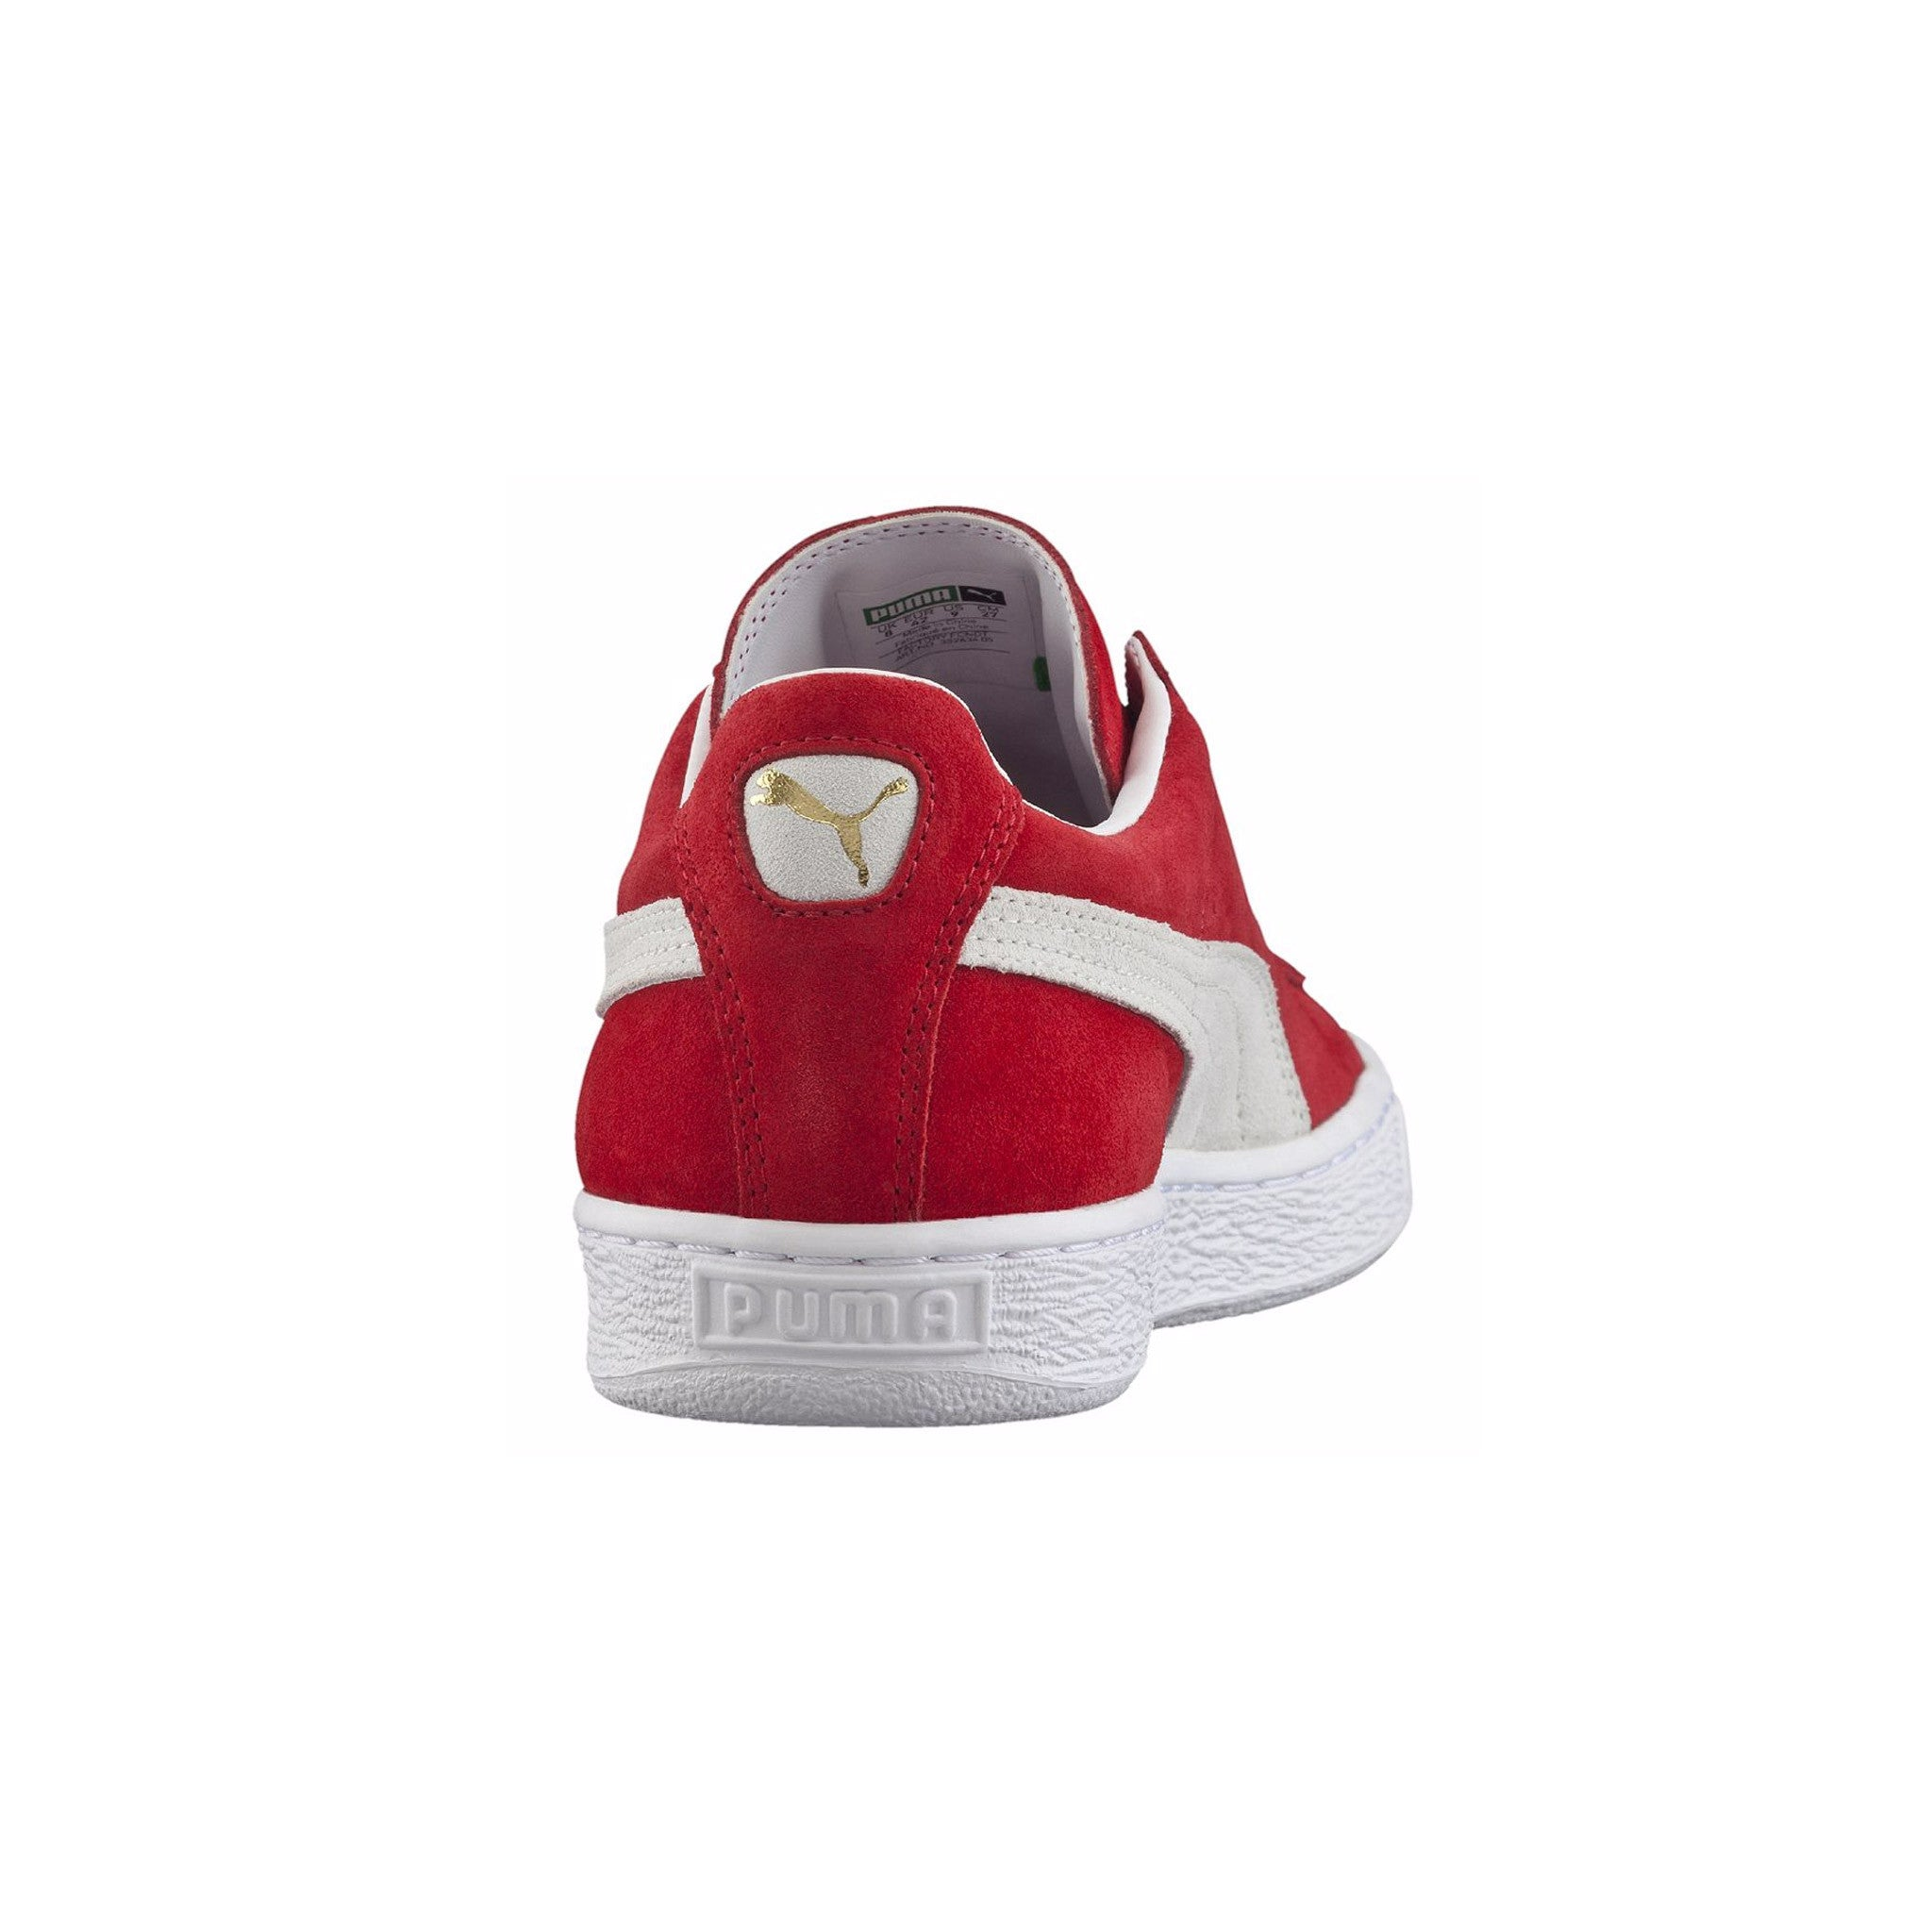 Suede Classic Puma Sneakers Red Back View